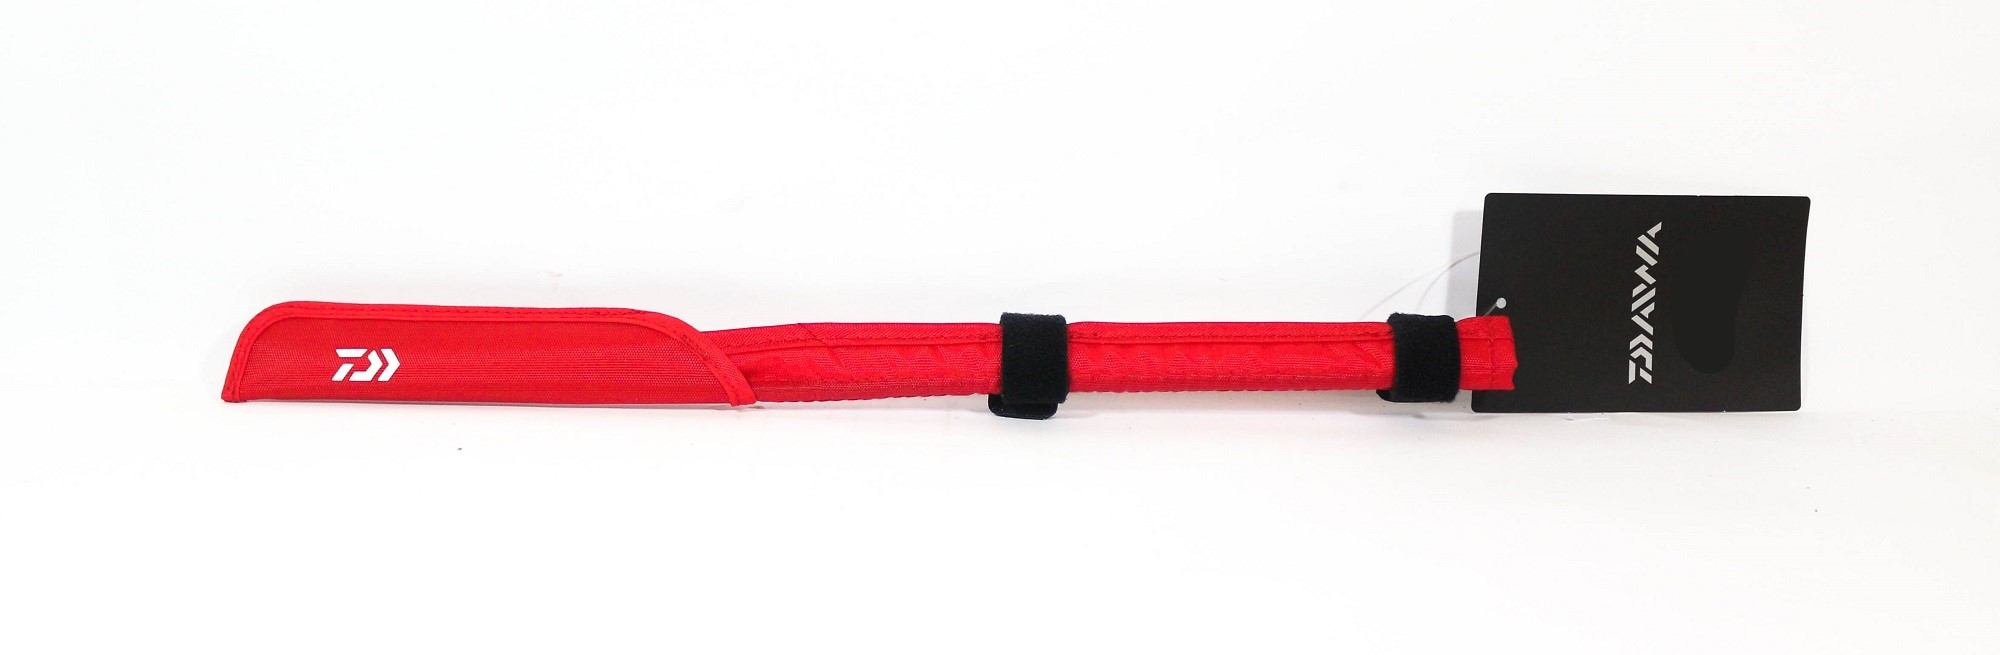 Sale Daiwa Rod Tip Protector Cover Short 37 x 2.5 cm Red (8872)